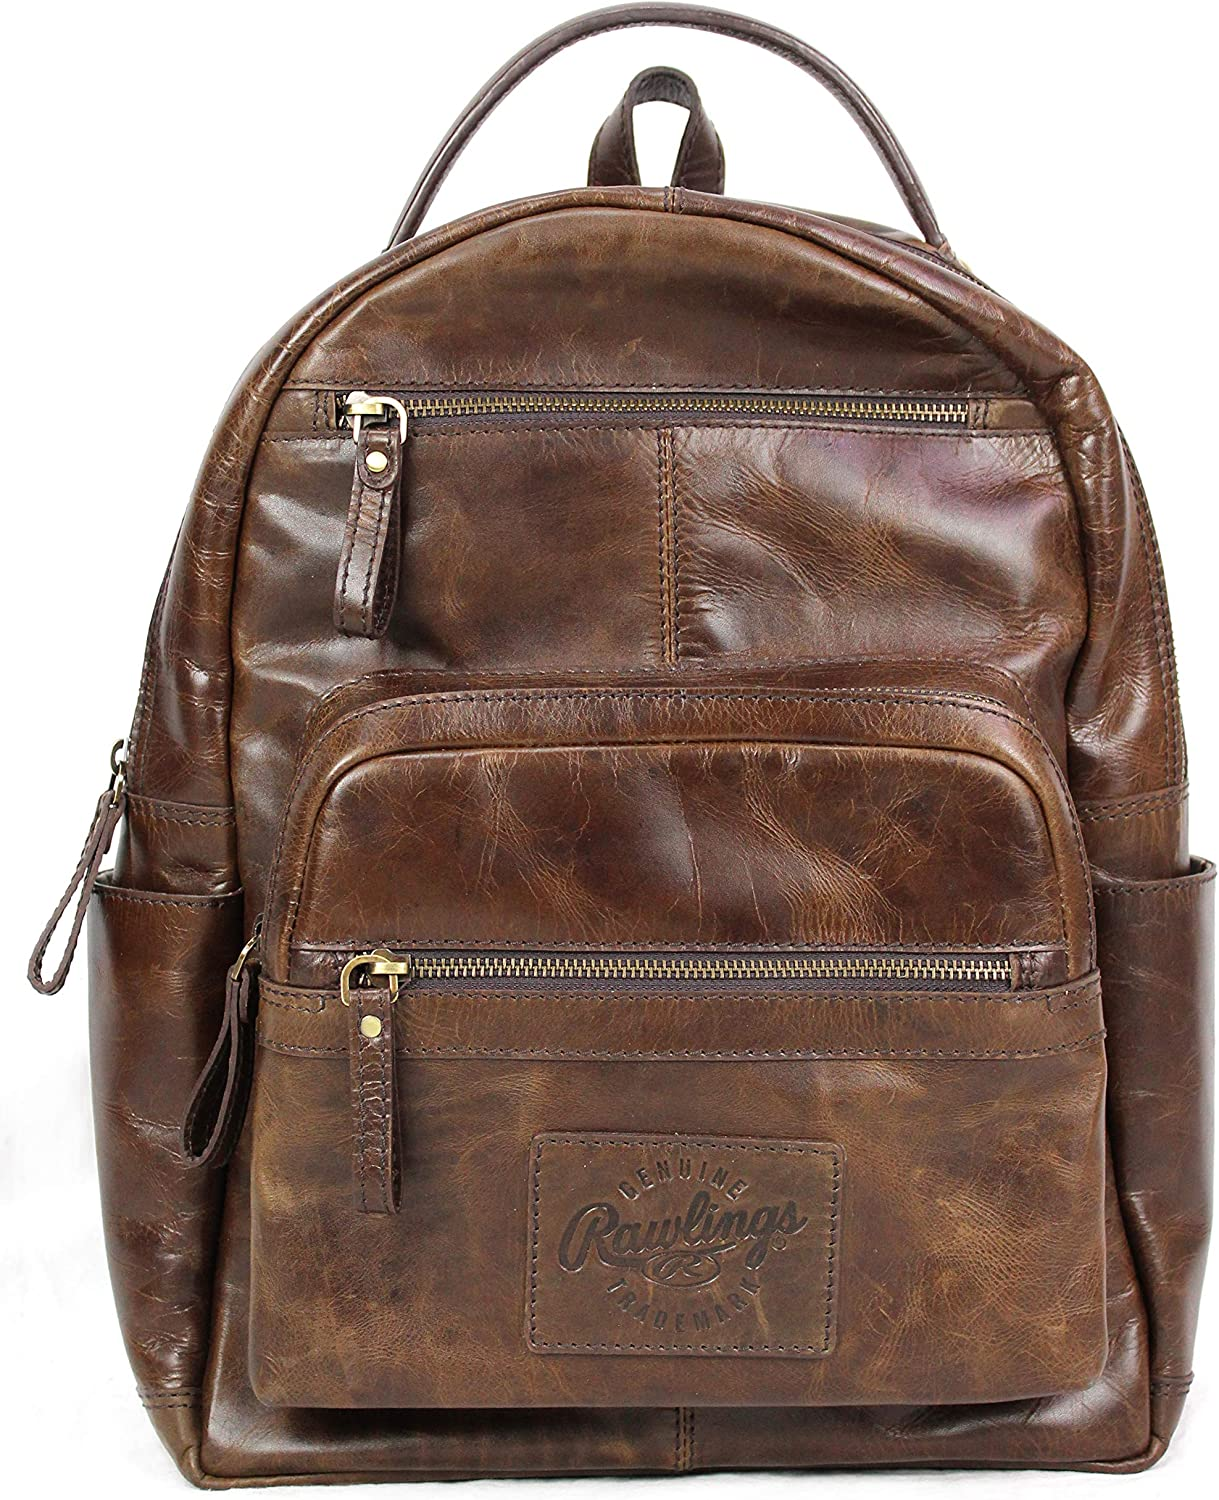 Rawlings Heritage Collection Leather Backpack (Brown, 15